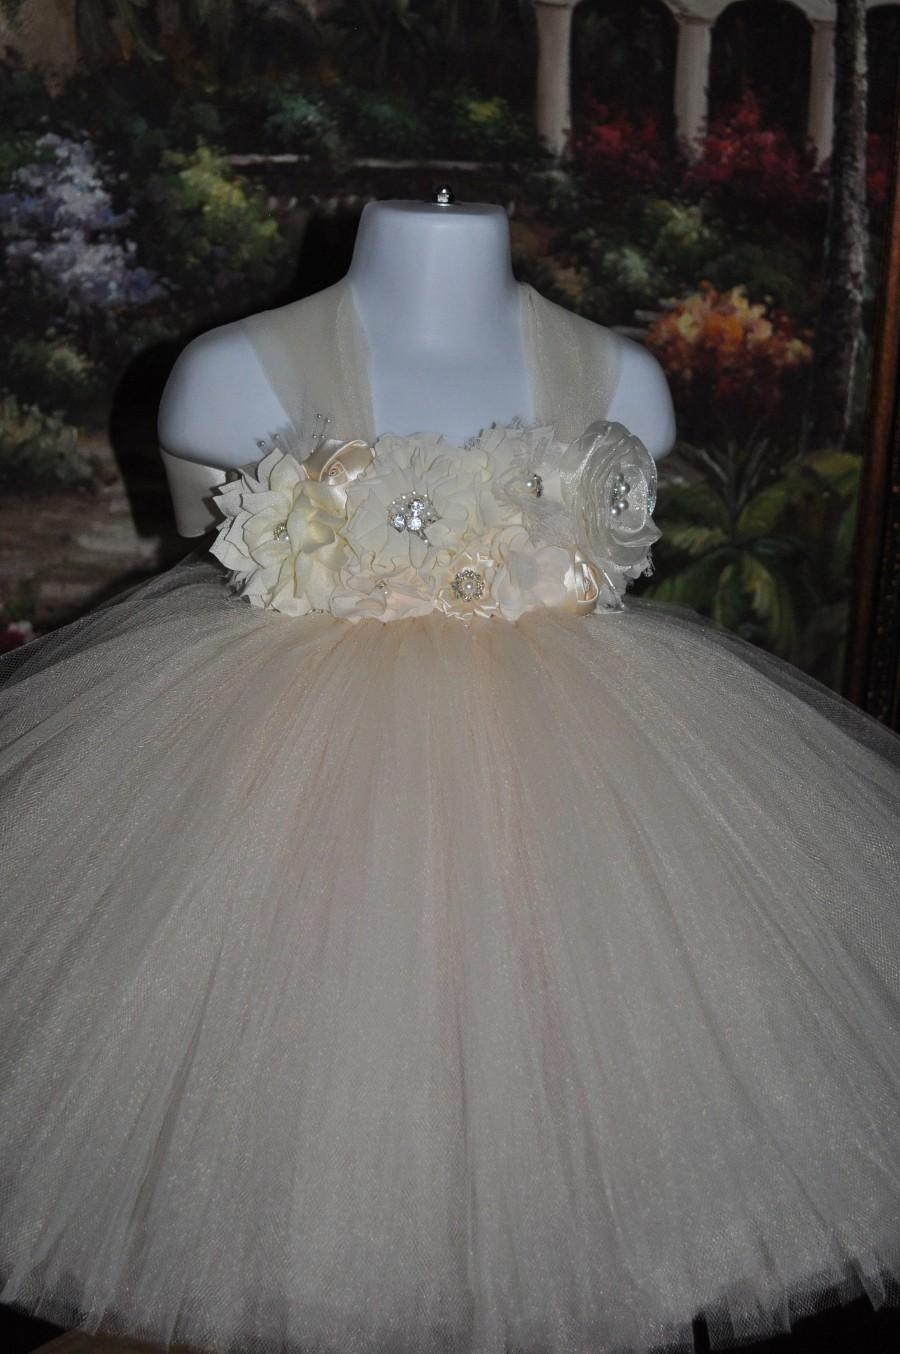 Wedding - Ivory Flower Girl Dress,Ivory Tulle Toddler Dress,Ivory Special Occasion Girls Dress,Ivory Infant Tutu Dress,Vintage  Flower Girl Dress